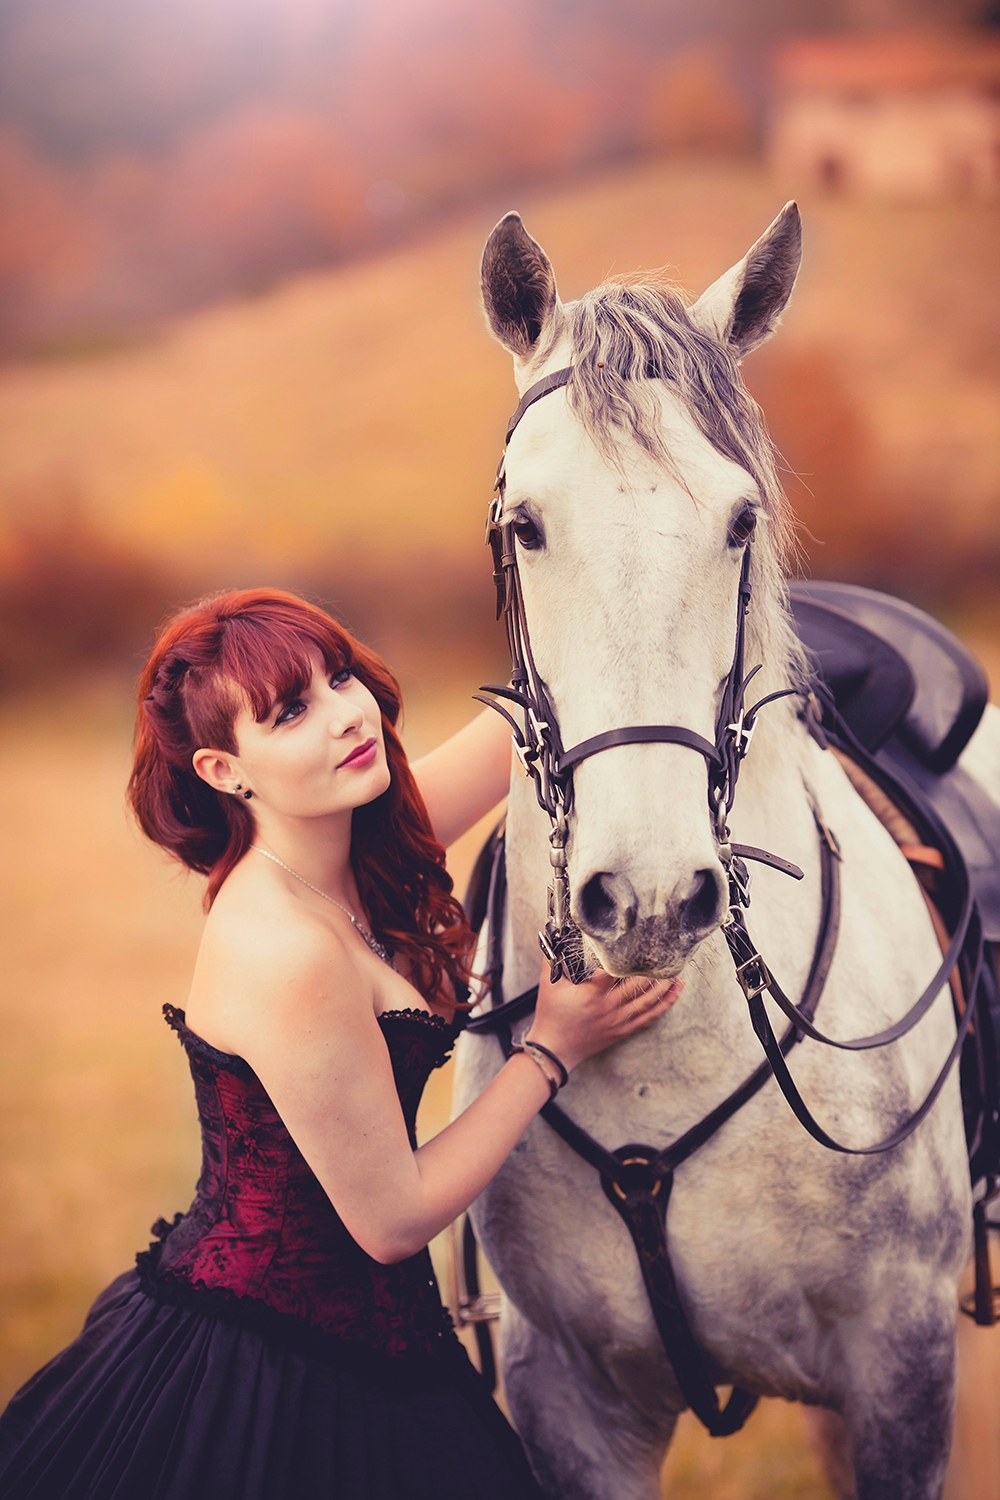 IMG_3546-sophie-narses-photographe-annecy-haute-savoie-book-shooting-portrait-geneve-cheval-suisse-cavalier-animaux-tirages-art-equestre-photo-modele-artiste-rhone-alpes-france